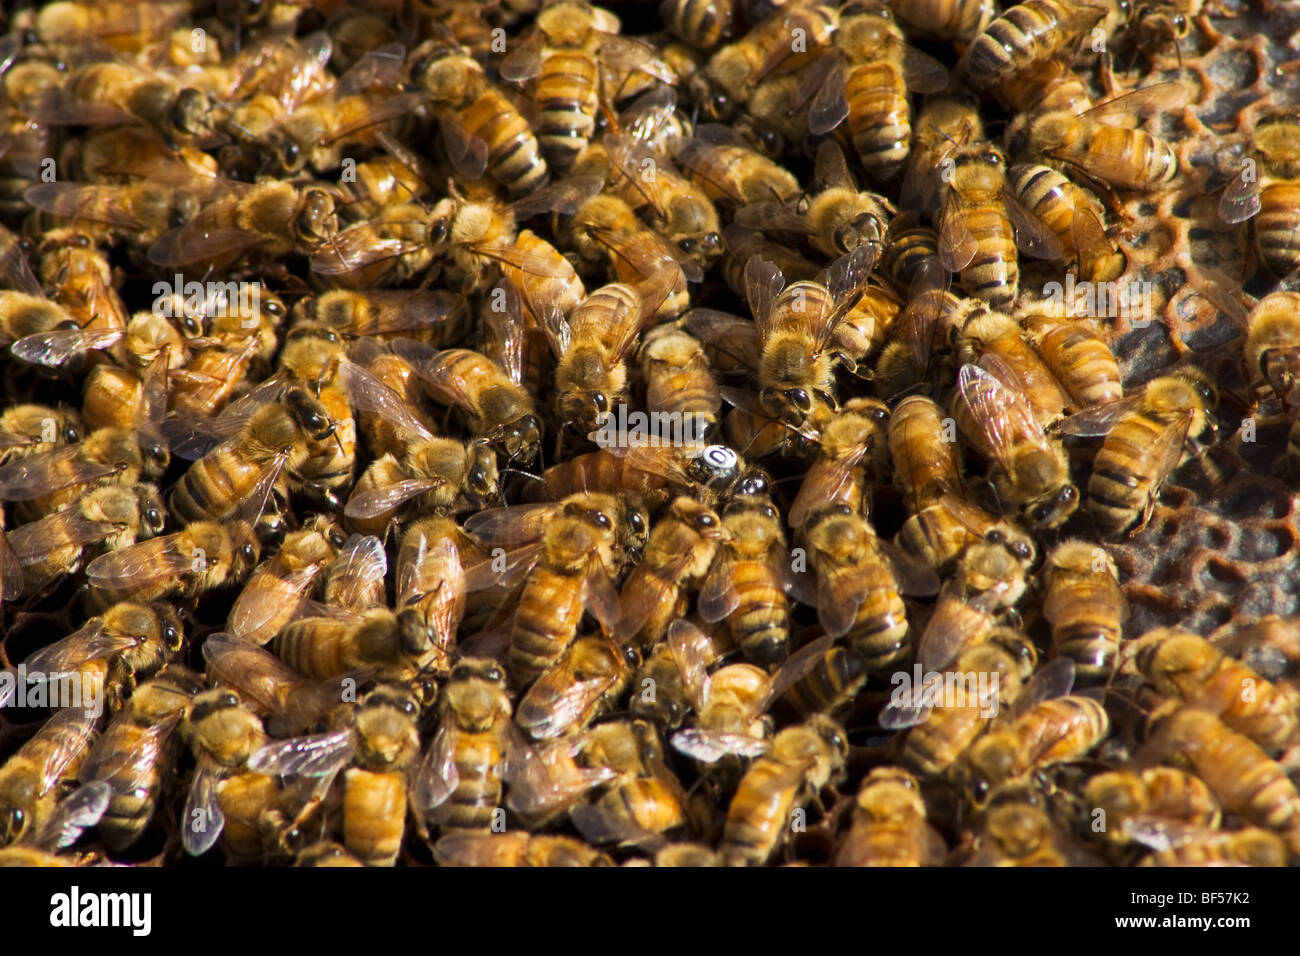 Agriculture - Honey bees (Apis mellinera) in a hive / Orland, California, USA. - Stock Image